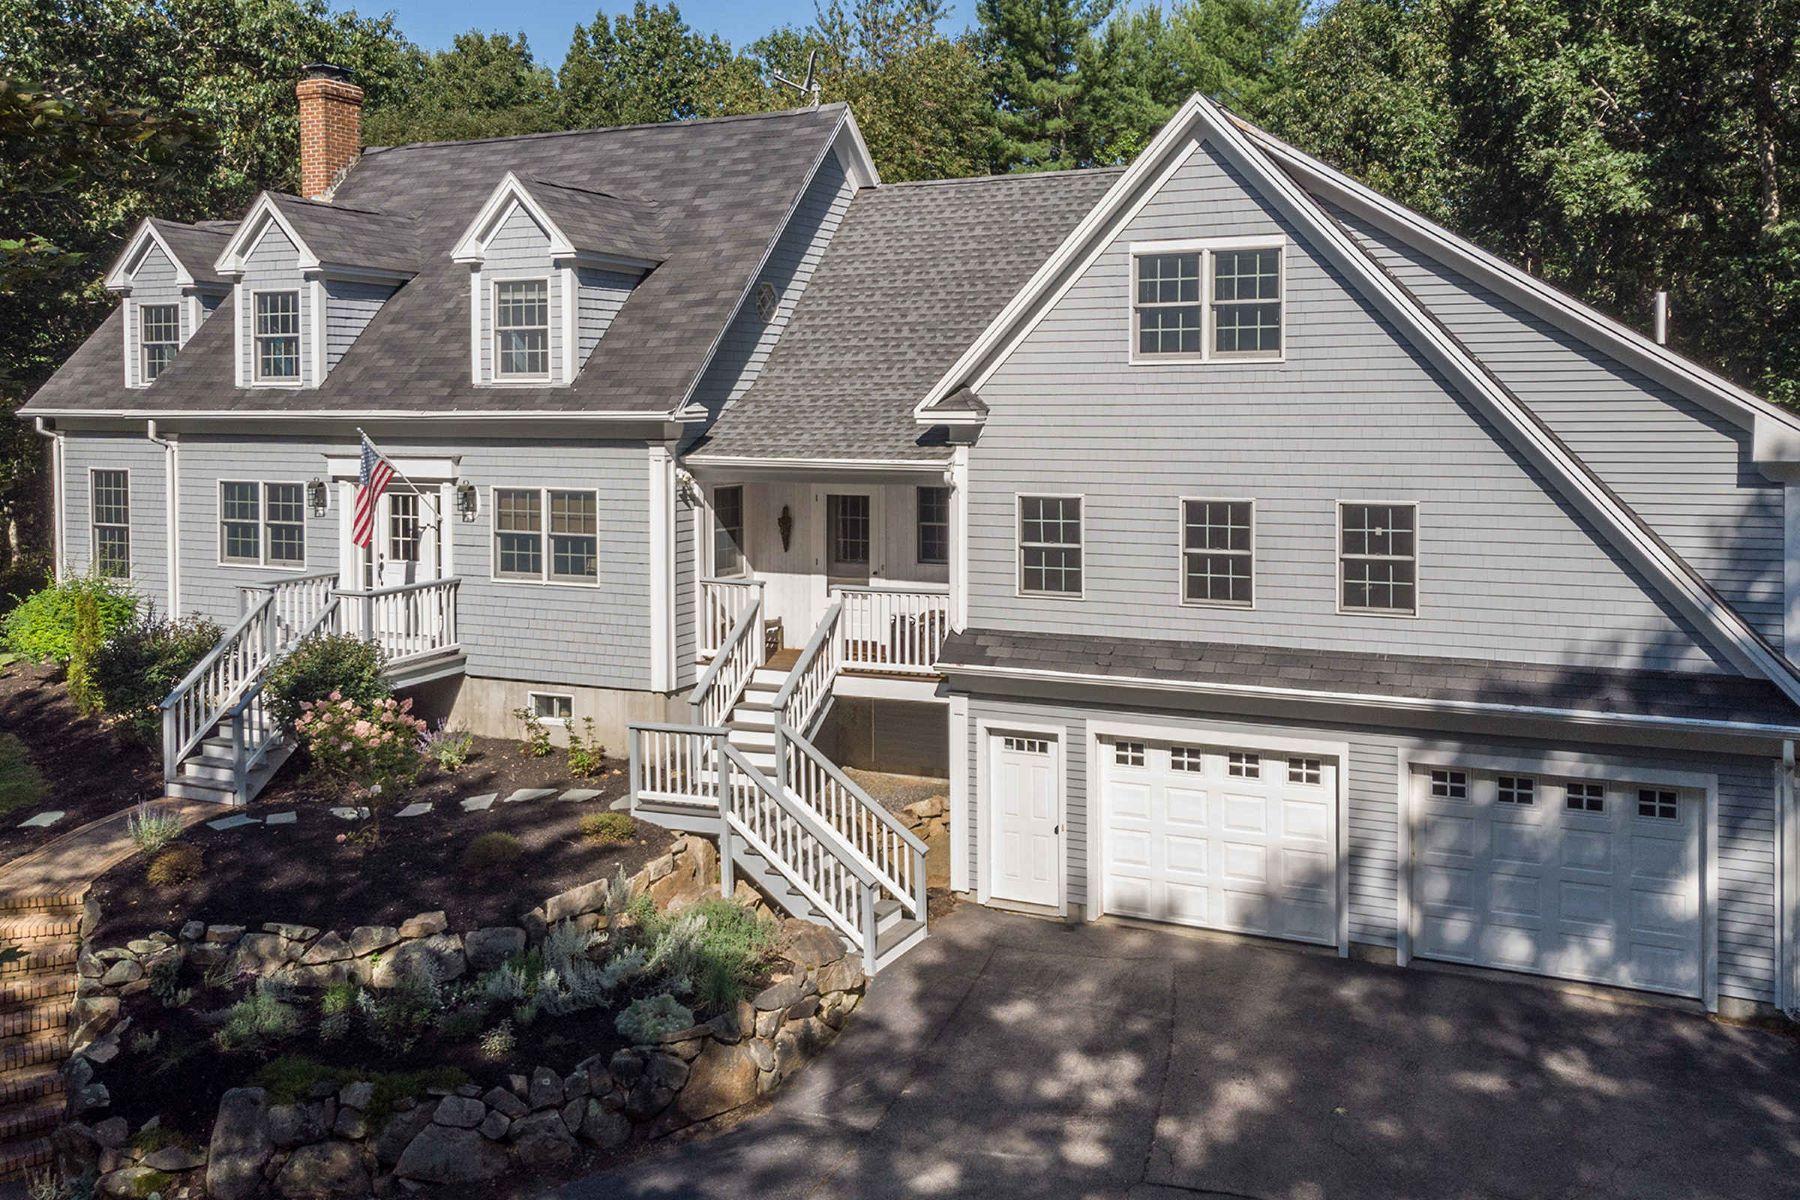 Single Family Homes for Sale at Beautiful Cape in Desirable South Berwick Location 73 Lindsay Lane, South Berwick, Maine 03908 United States